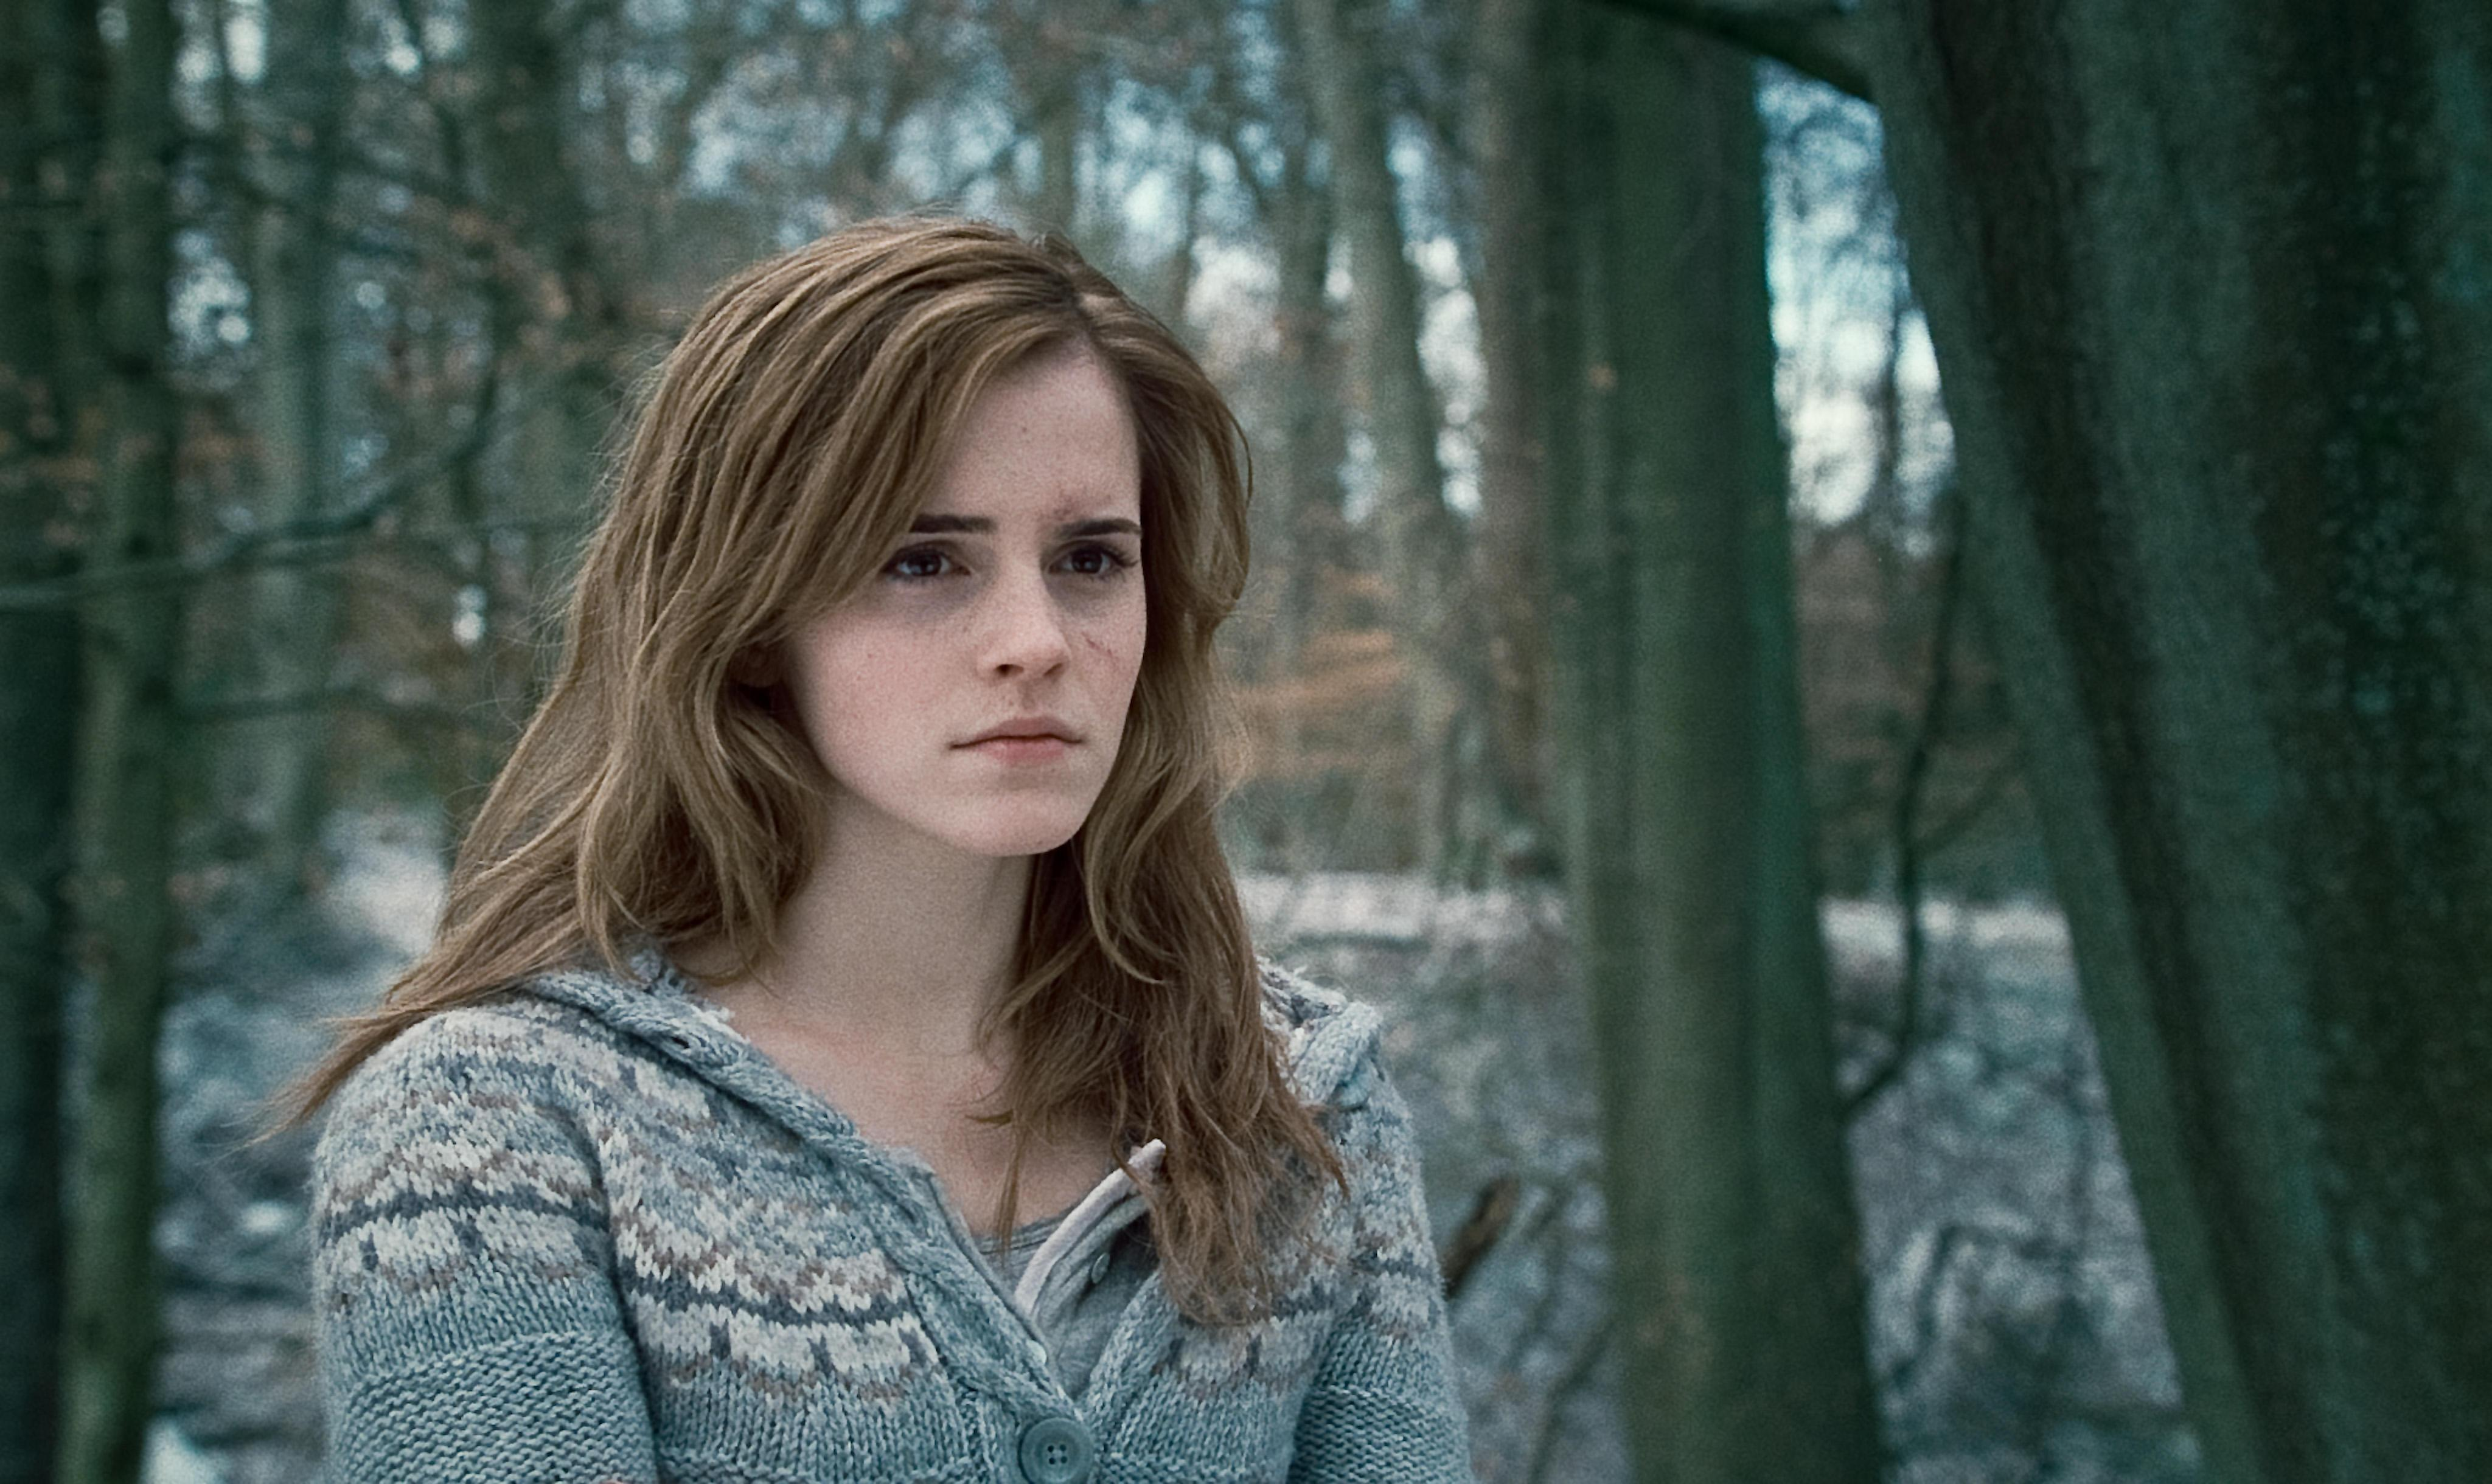 Emma Watson to play bookish Belle in live-action 'Beauty and the Beast'